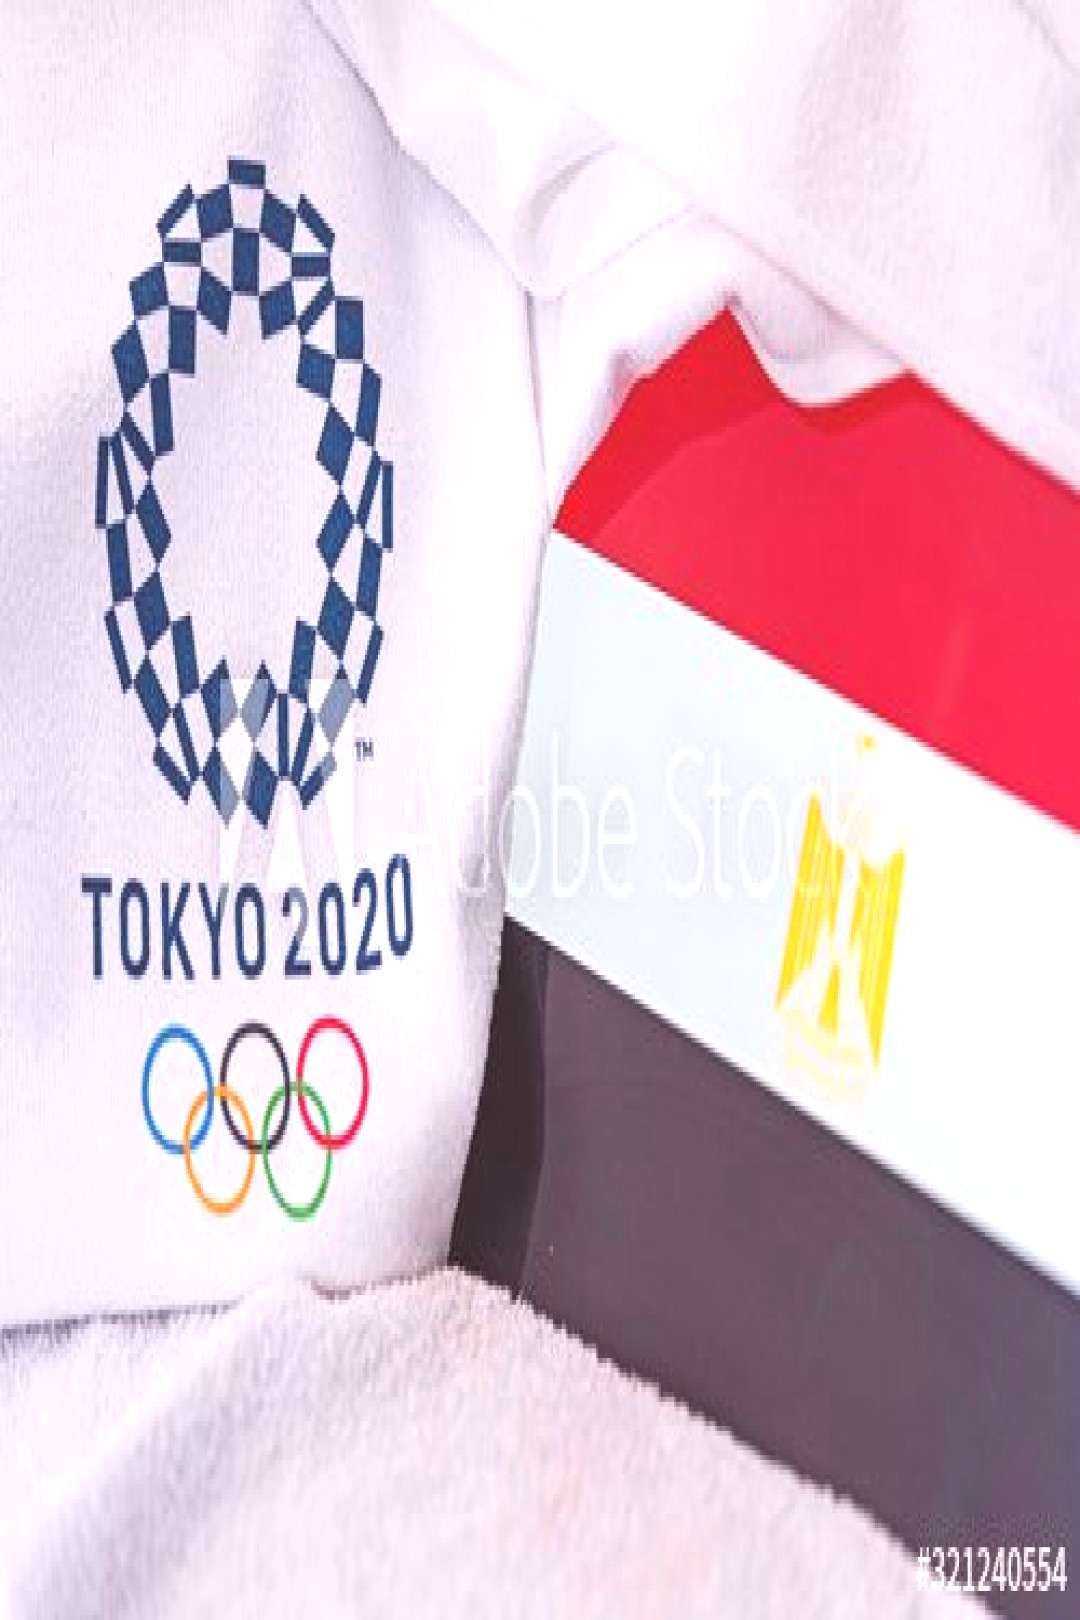 TOKYO, JAPAN, FEBRUARY. 4, 2020 Egypt National flag, official logo of summer olympic games in Toky